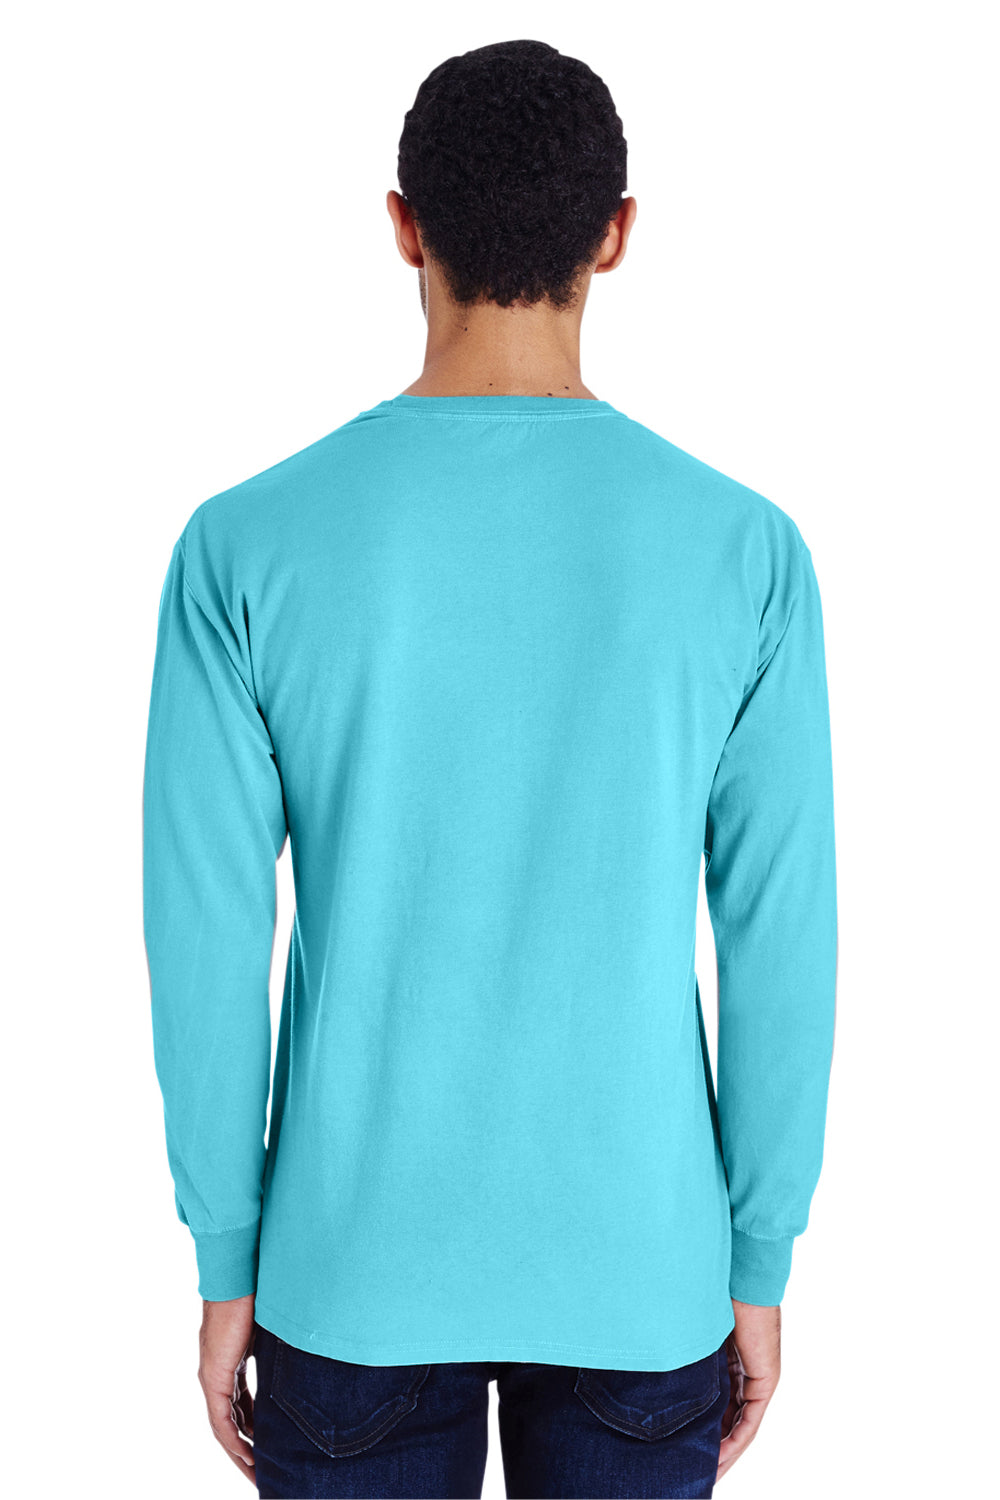 ComfortWash by Hanes GDH200 Long Sleeve Crewneck T-Shirt Freshwater Blue Back